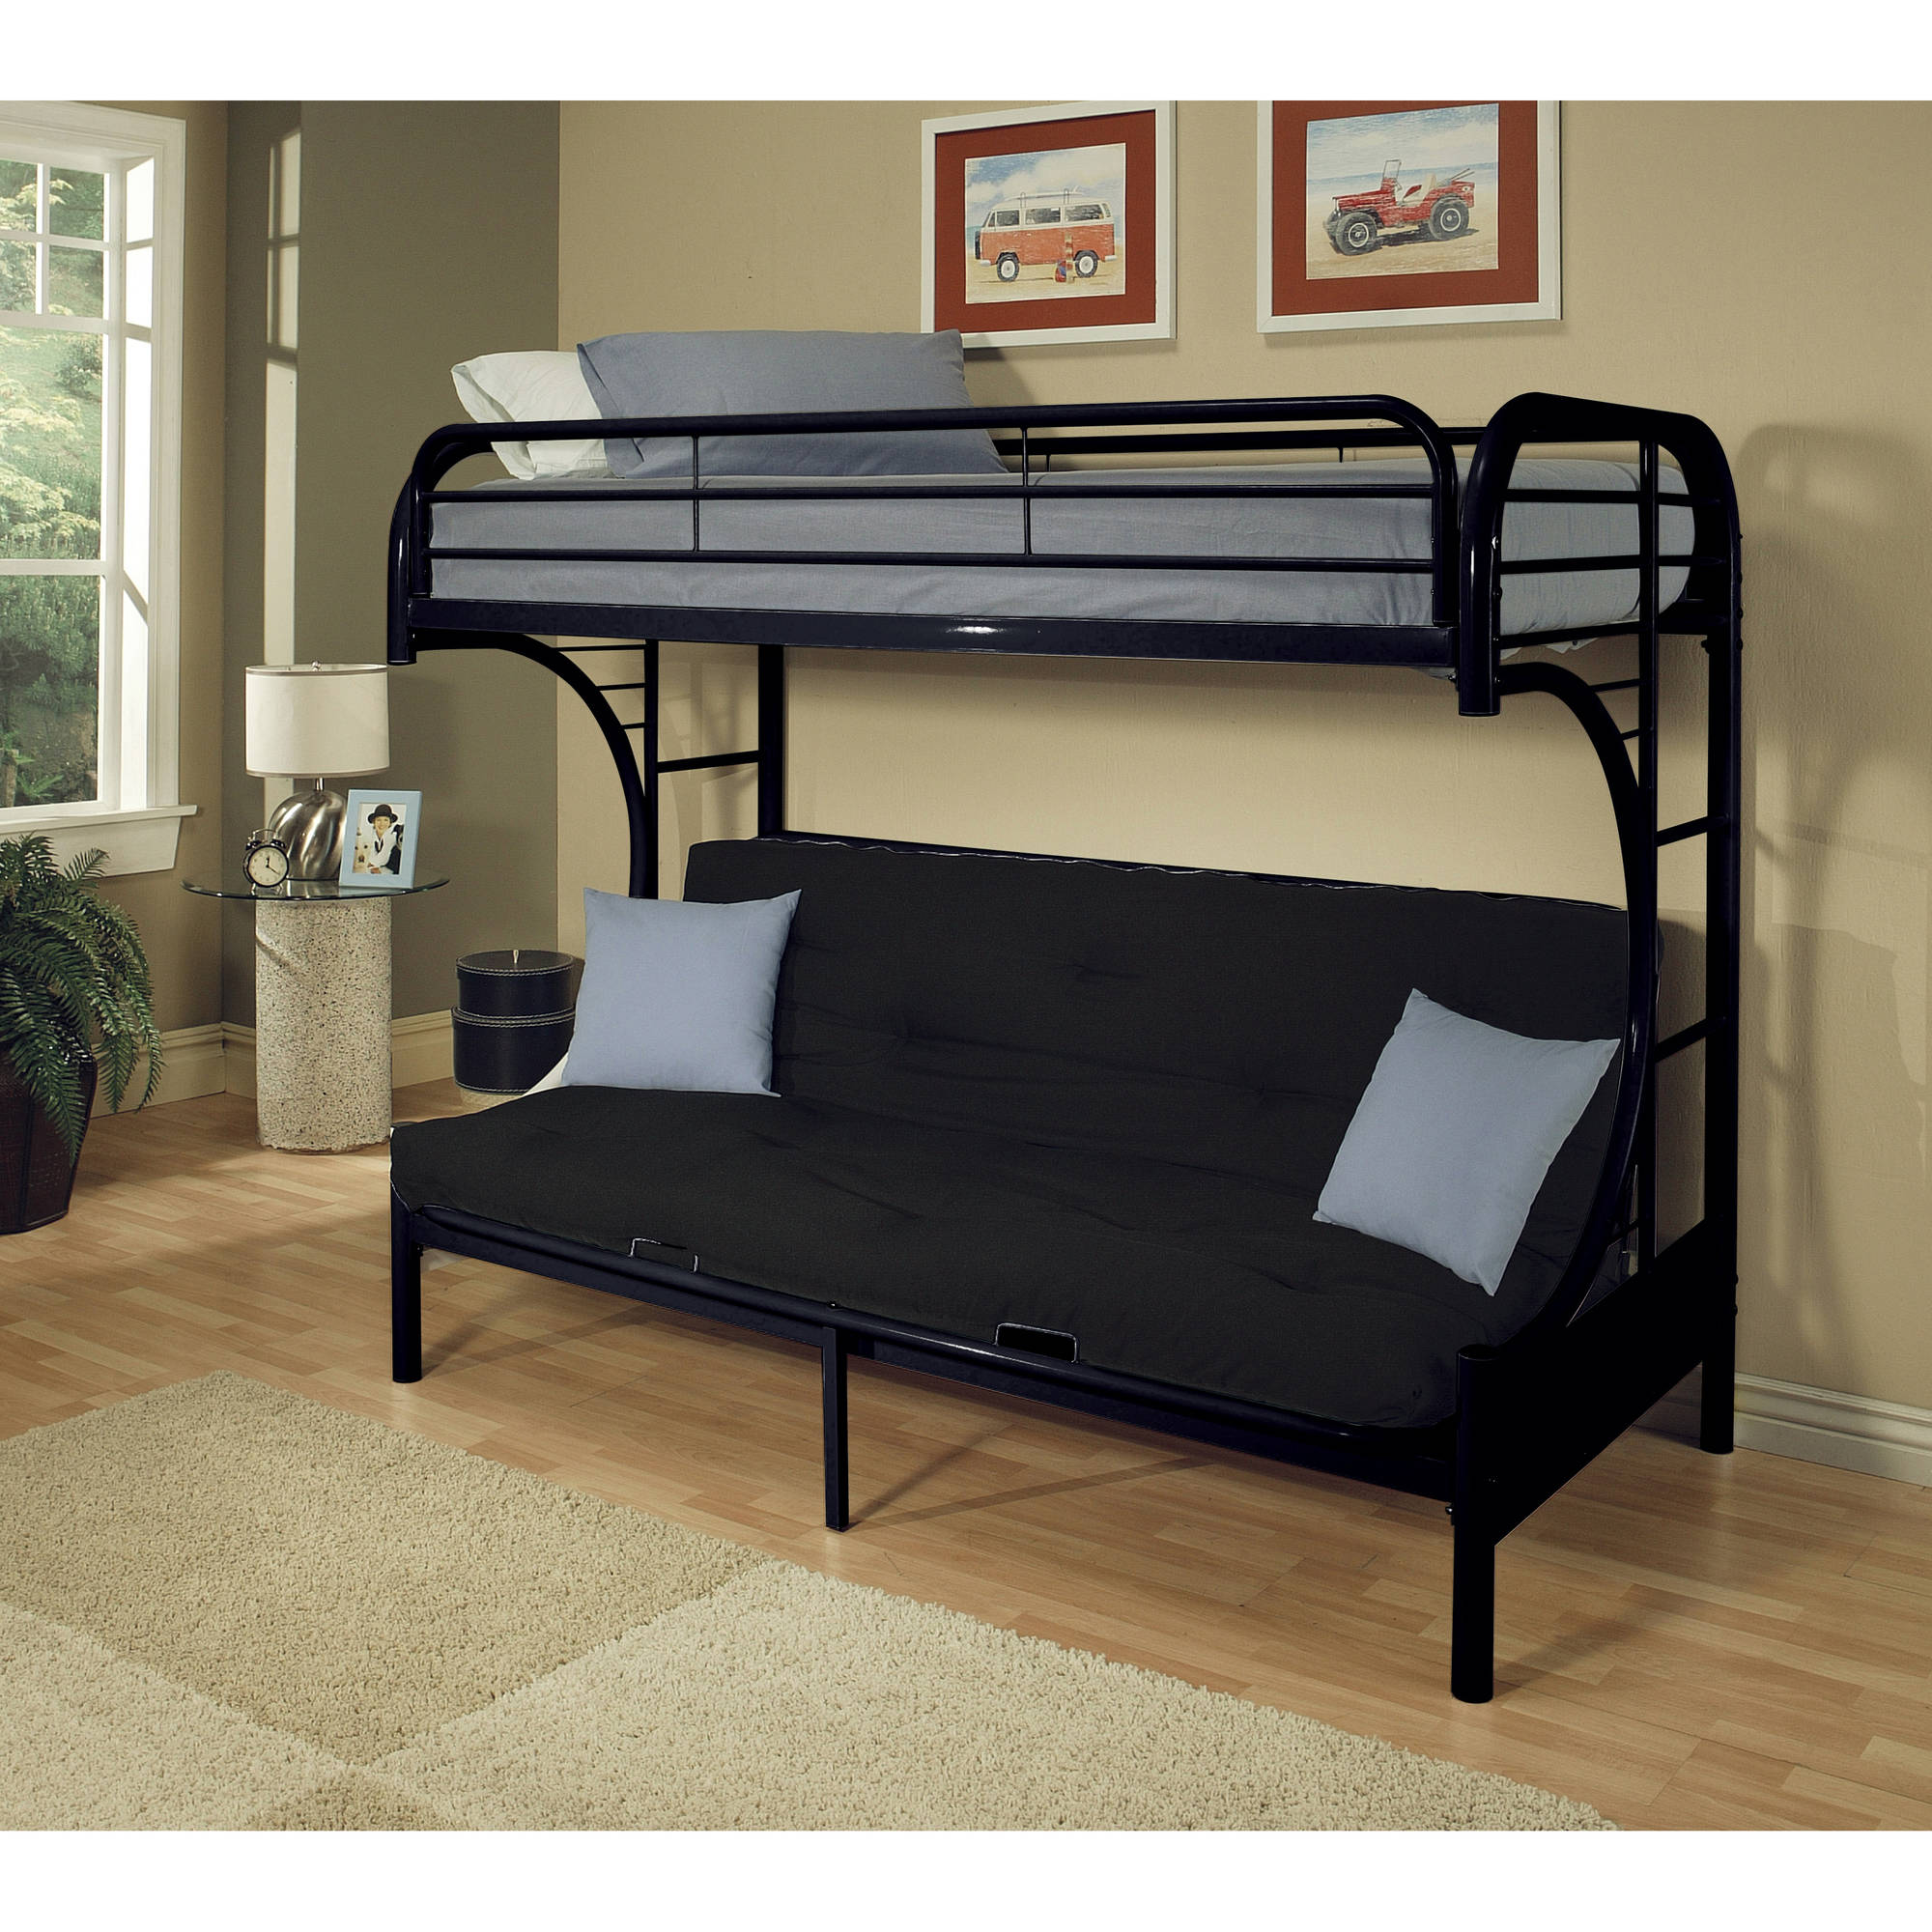 Bunk bed with couch on bottom - Bunk Bed With Couch On Bottom 38